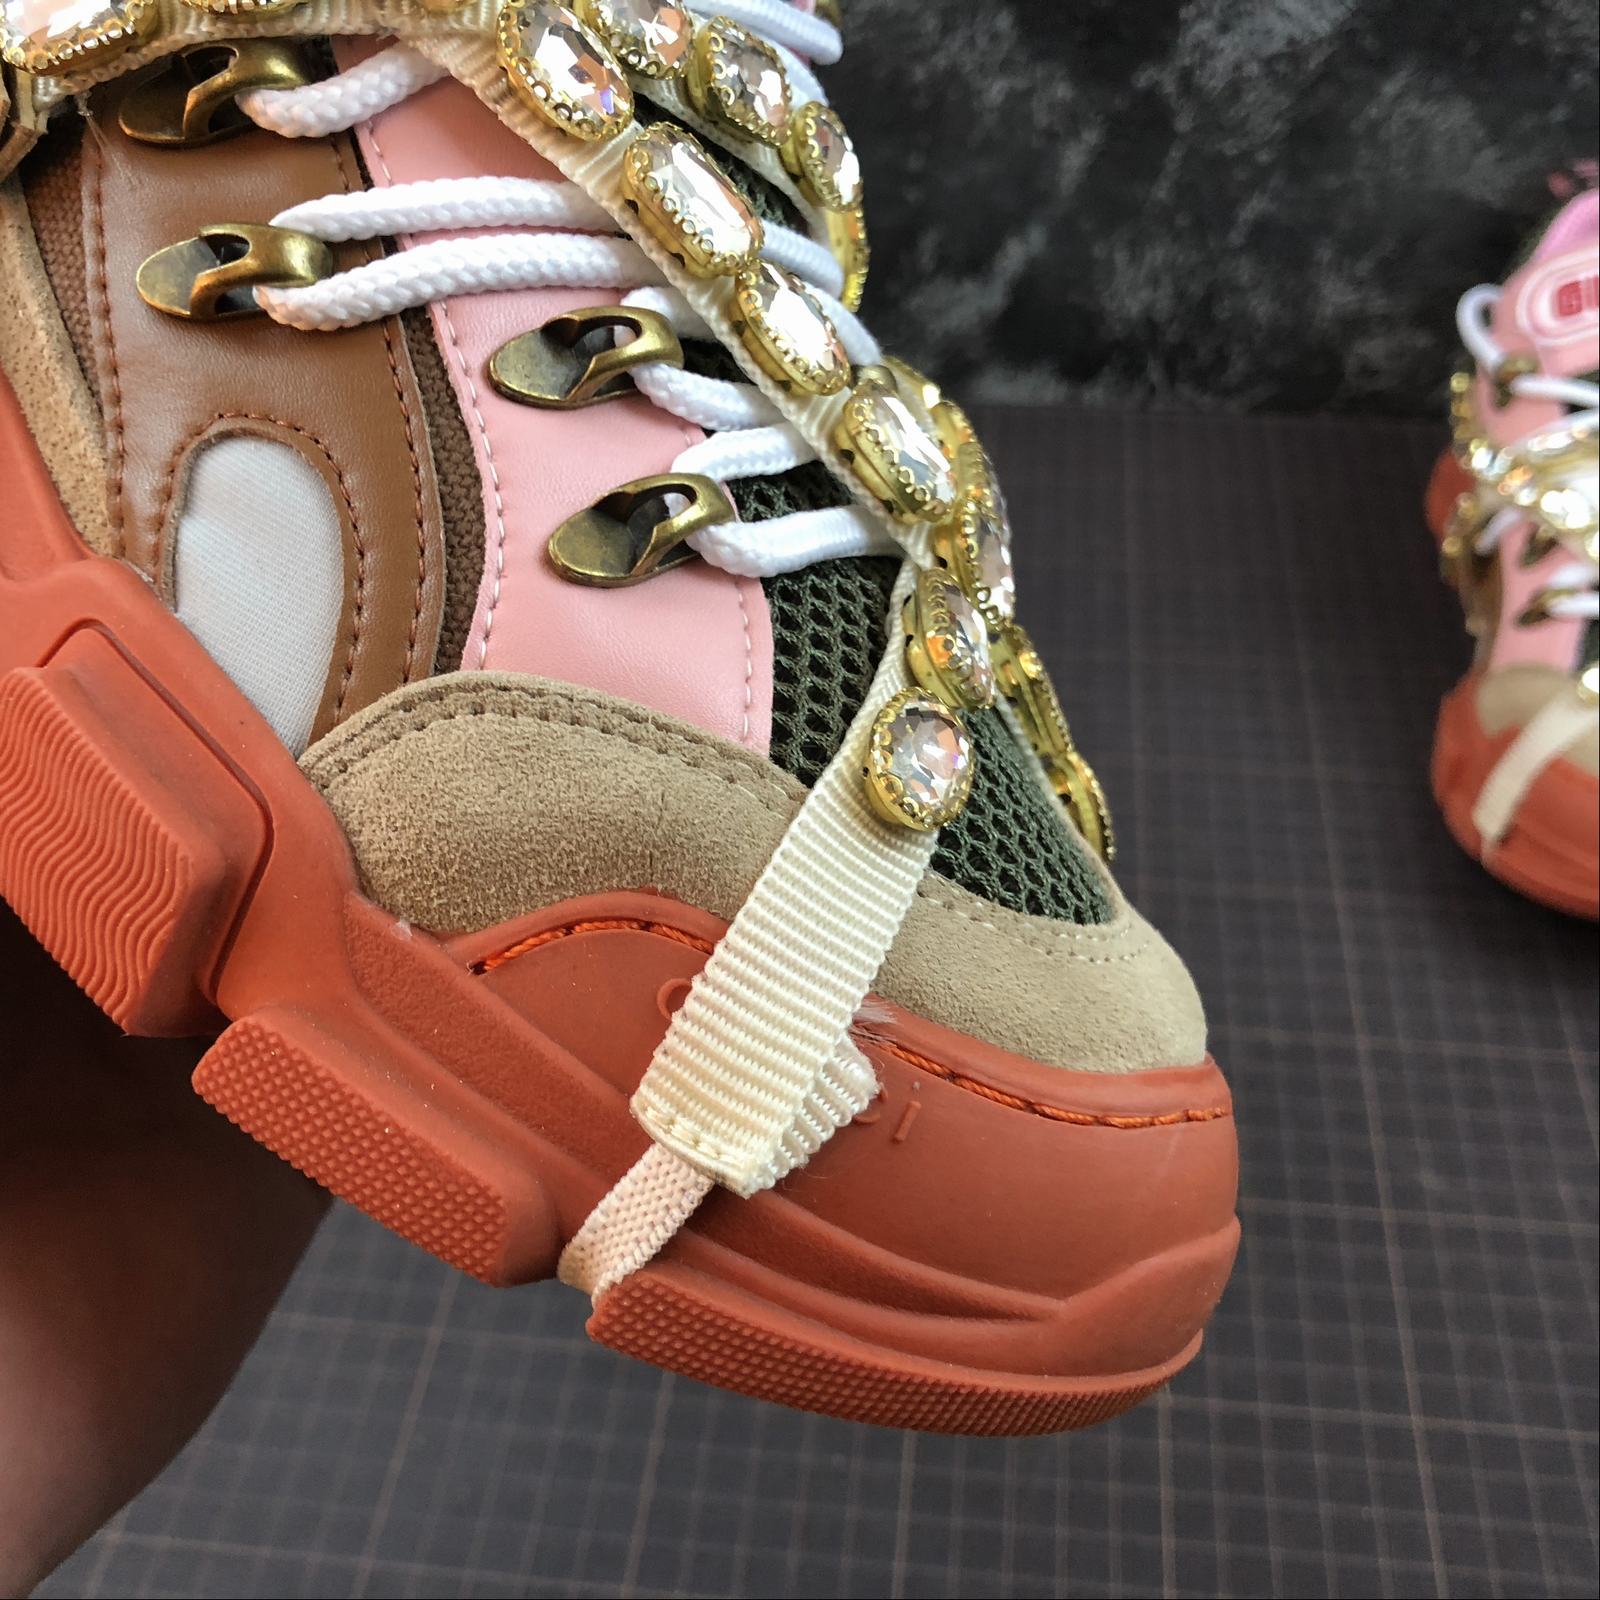 Женские кроссовки Gucci Flashtrek sneakers with removable crystals Orange - фото №10